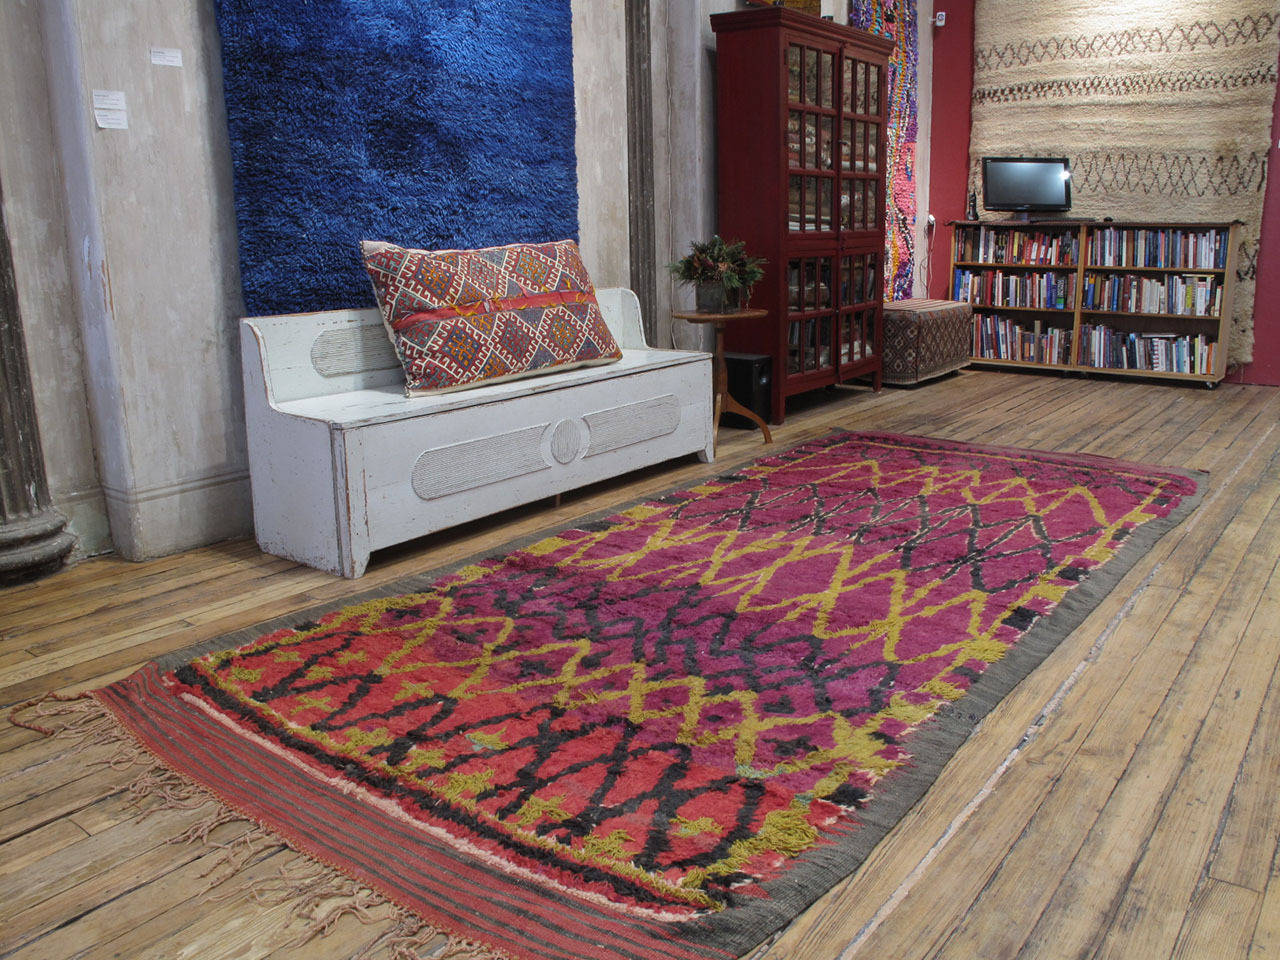 A fascinating Moroccan Berber carpet, attributed to the Ait Bou Ichaouen tribes. Working within the traditions of her tribe, the weaver nonetheless created her unique interpretation of age-old themes that defies simplistic explanations.  At the